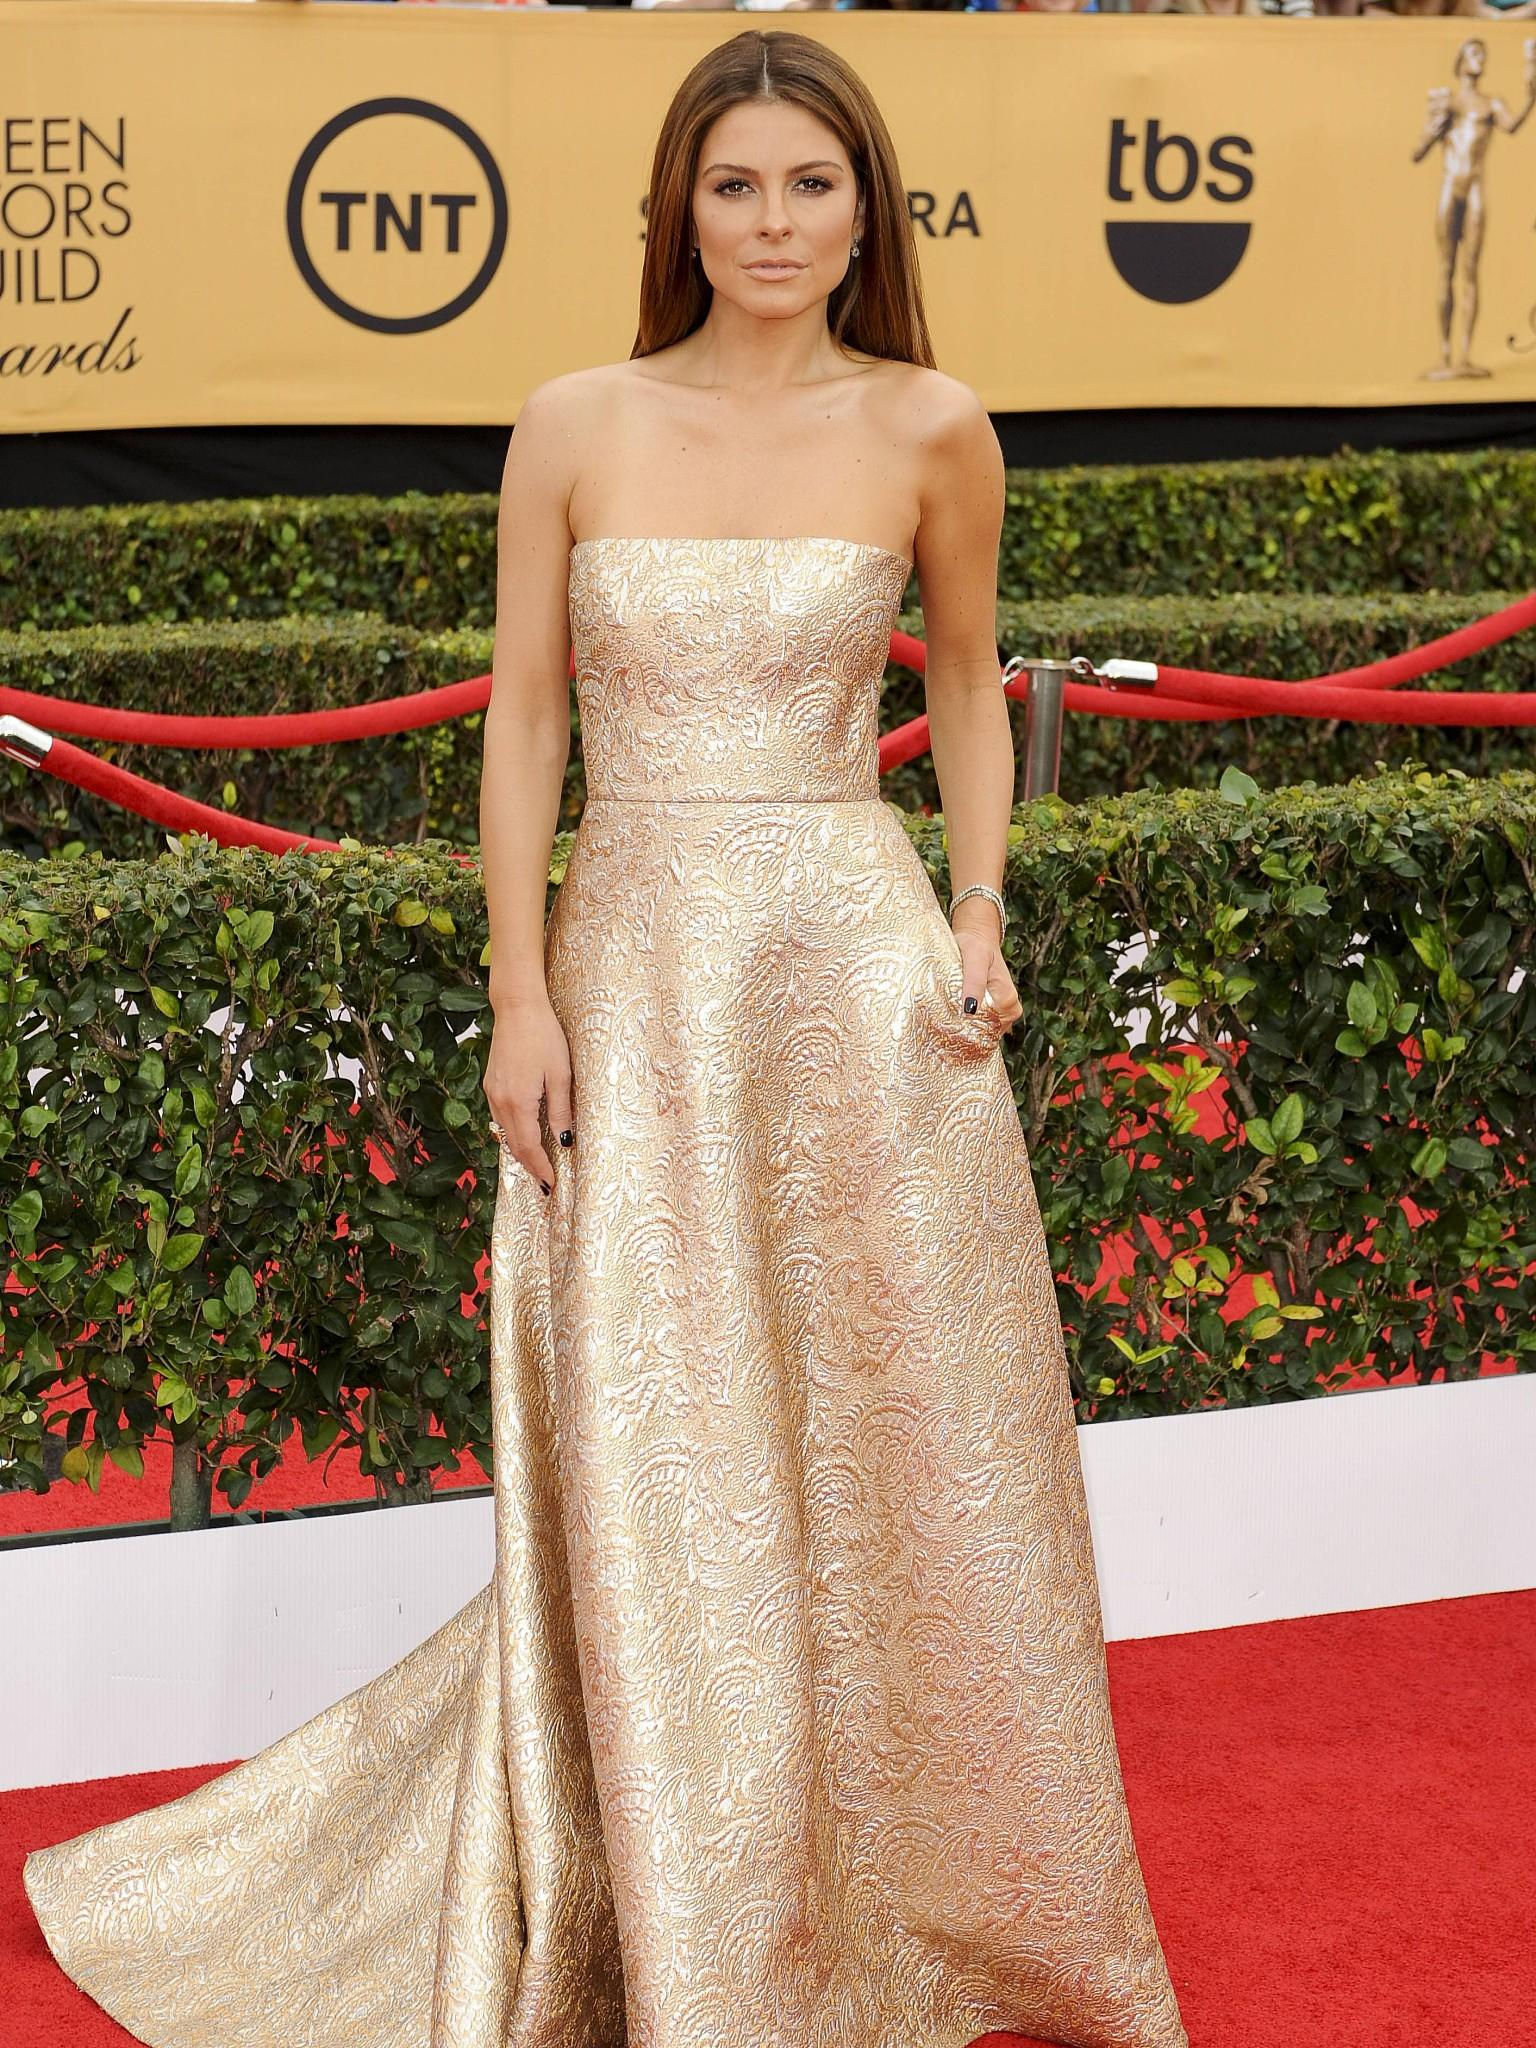 SAG Awards Award 2015 Roter Teppich Outfits Style Kleider